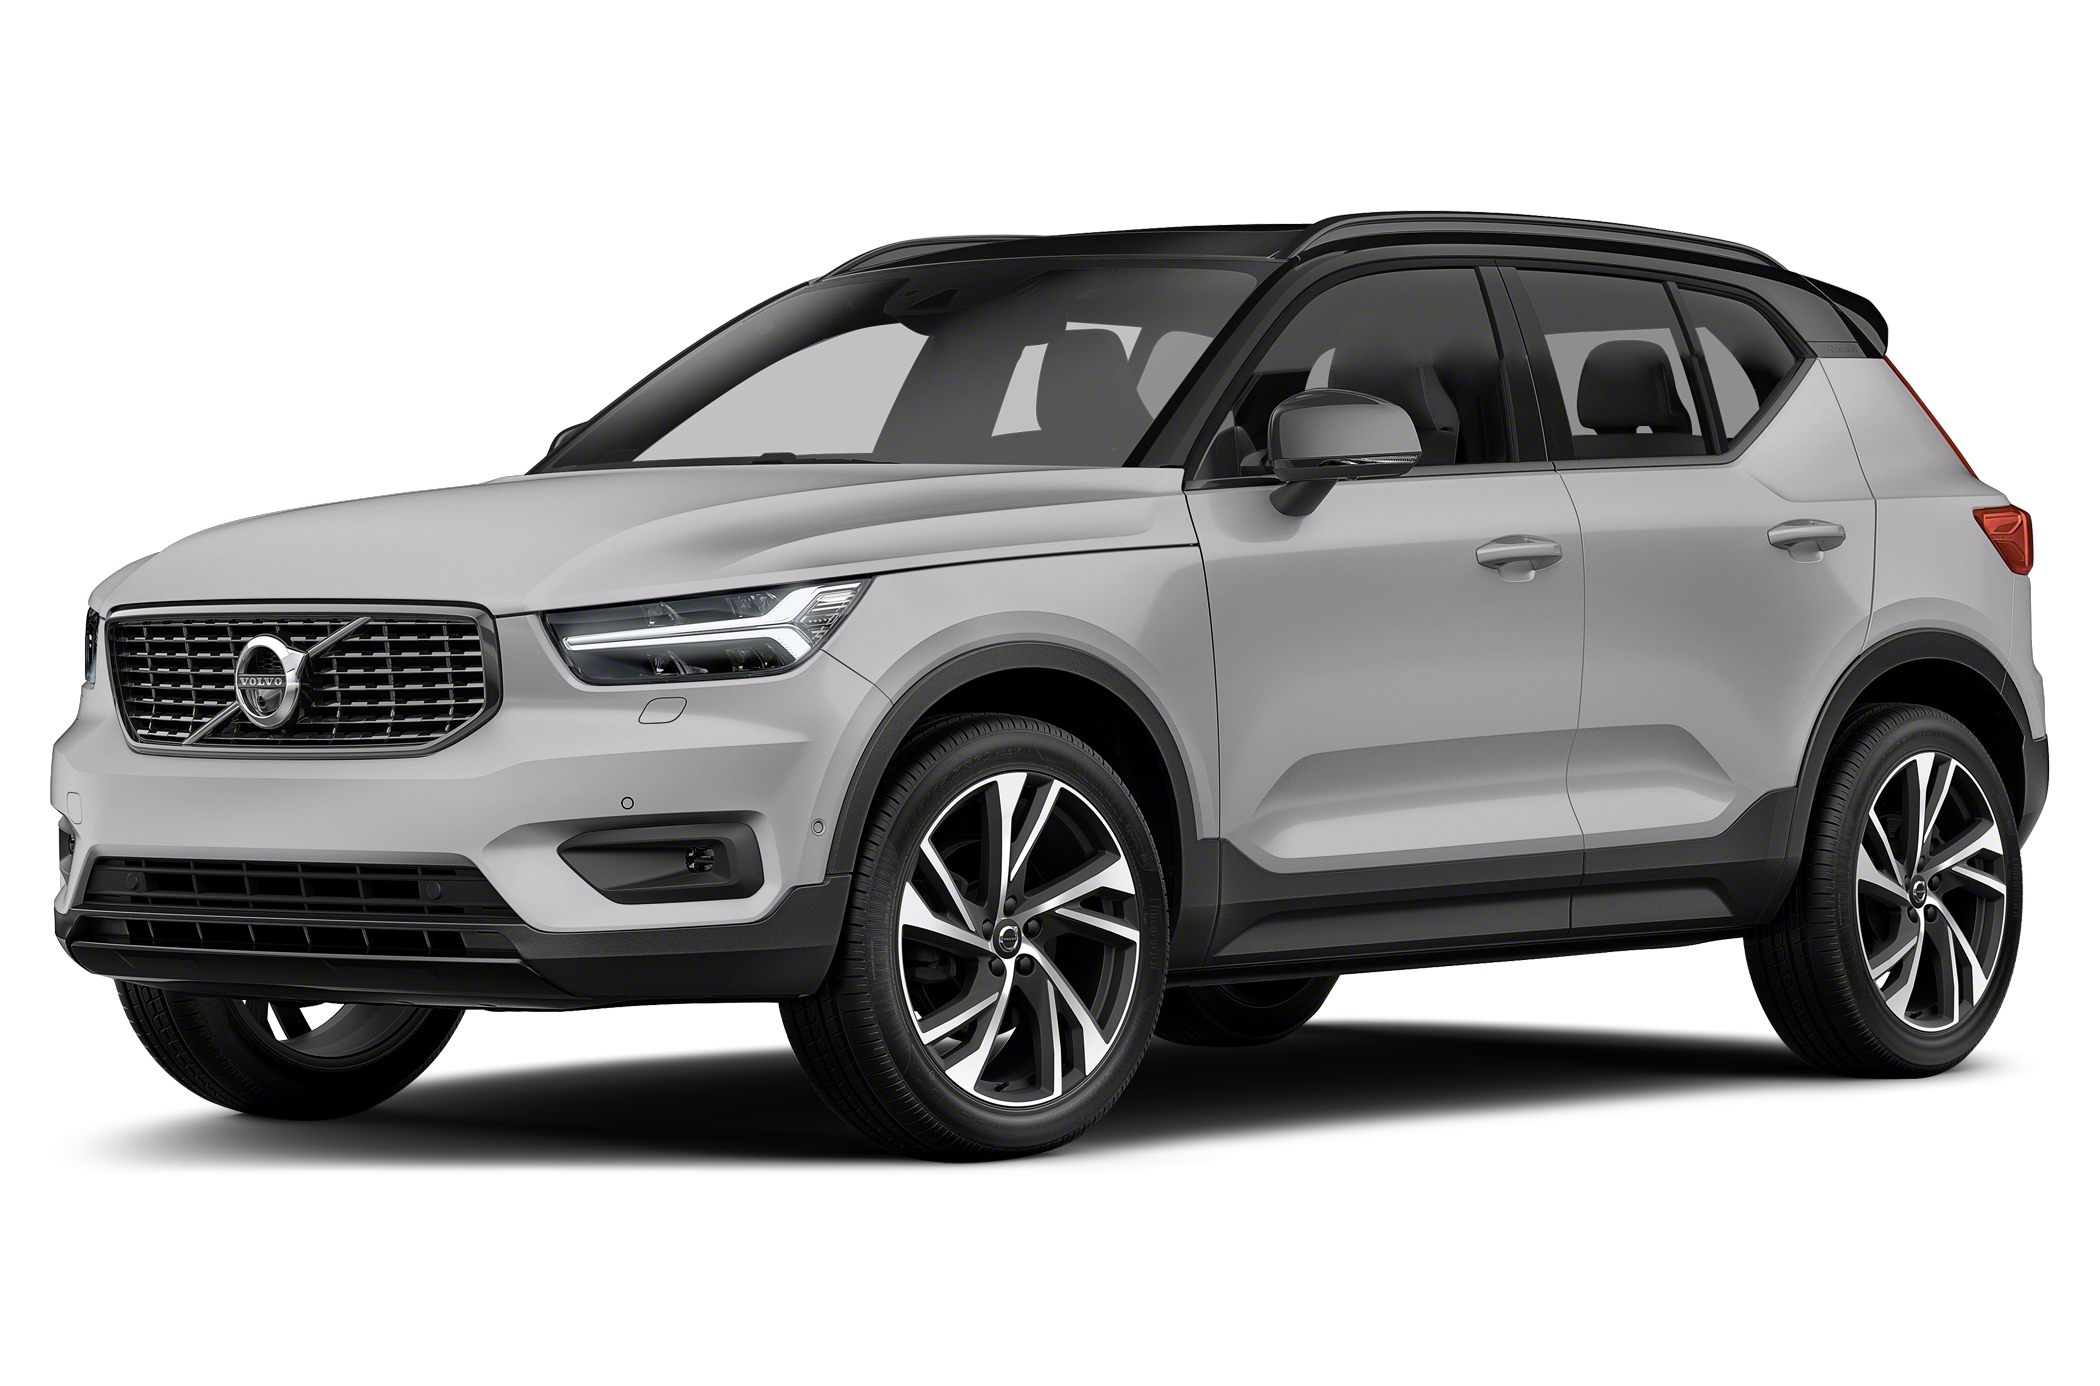 volvo xc40 compact crossover will get 3 cylinder engine premium trim autoblog. Black Bedroom Furniture Sets. Home Design Ideas